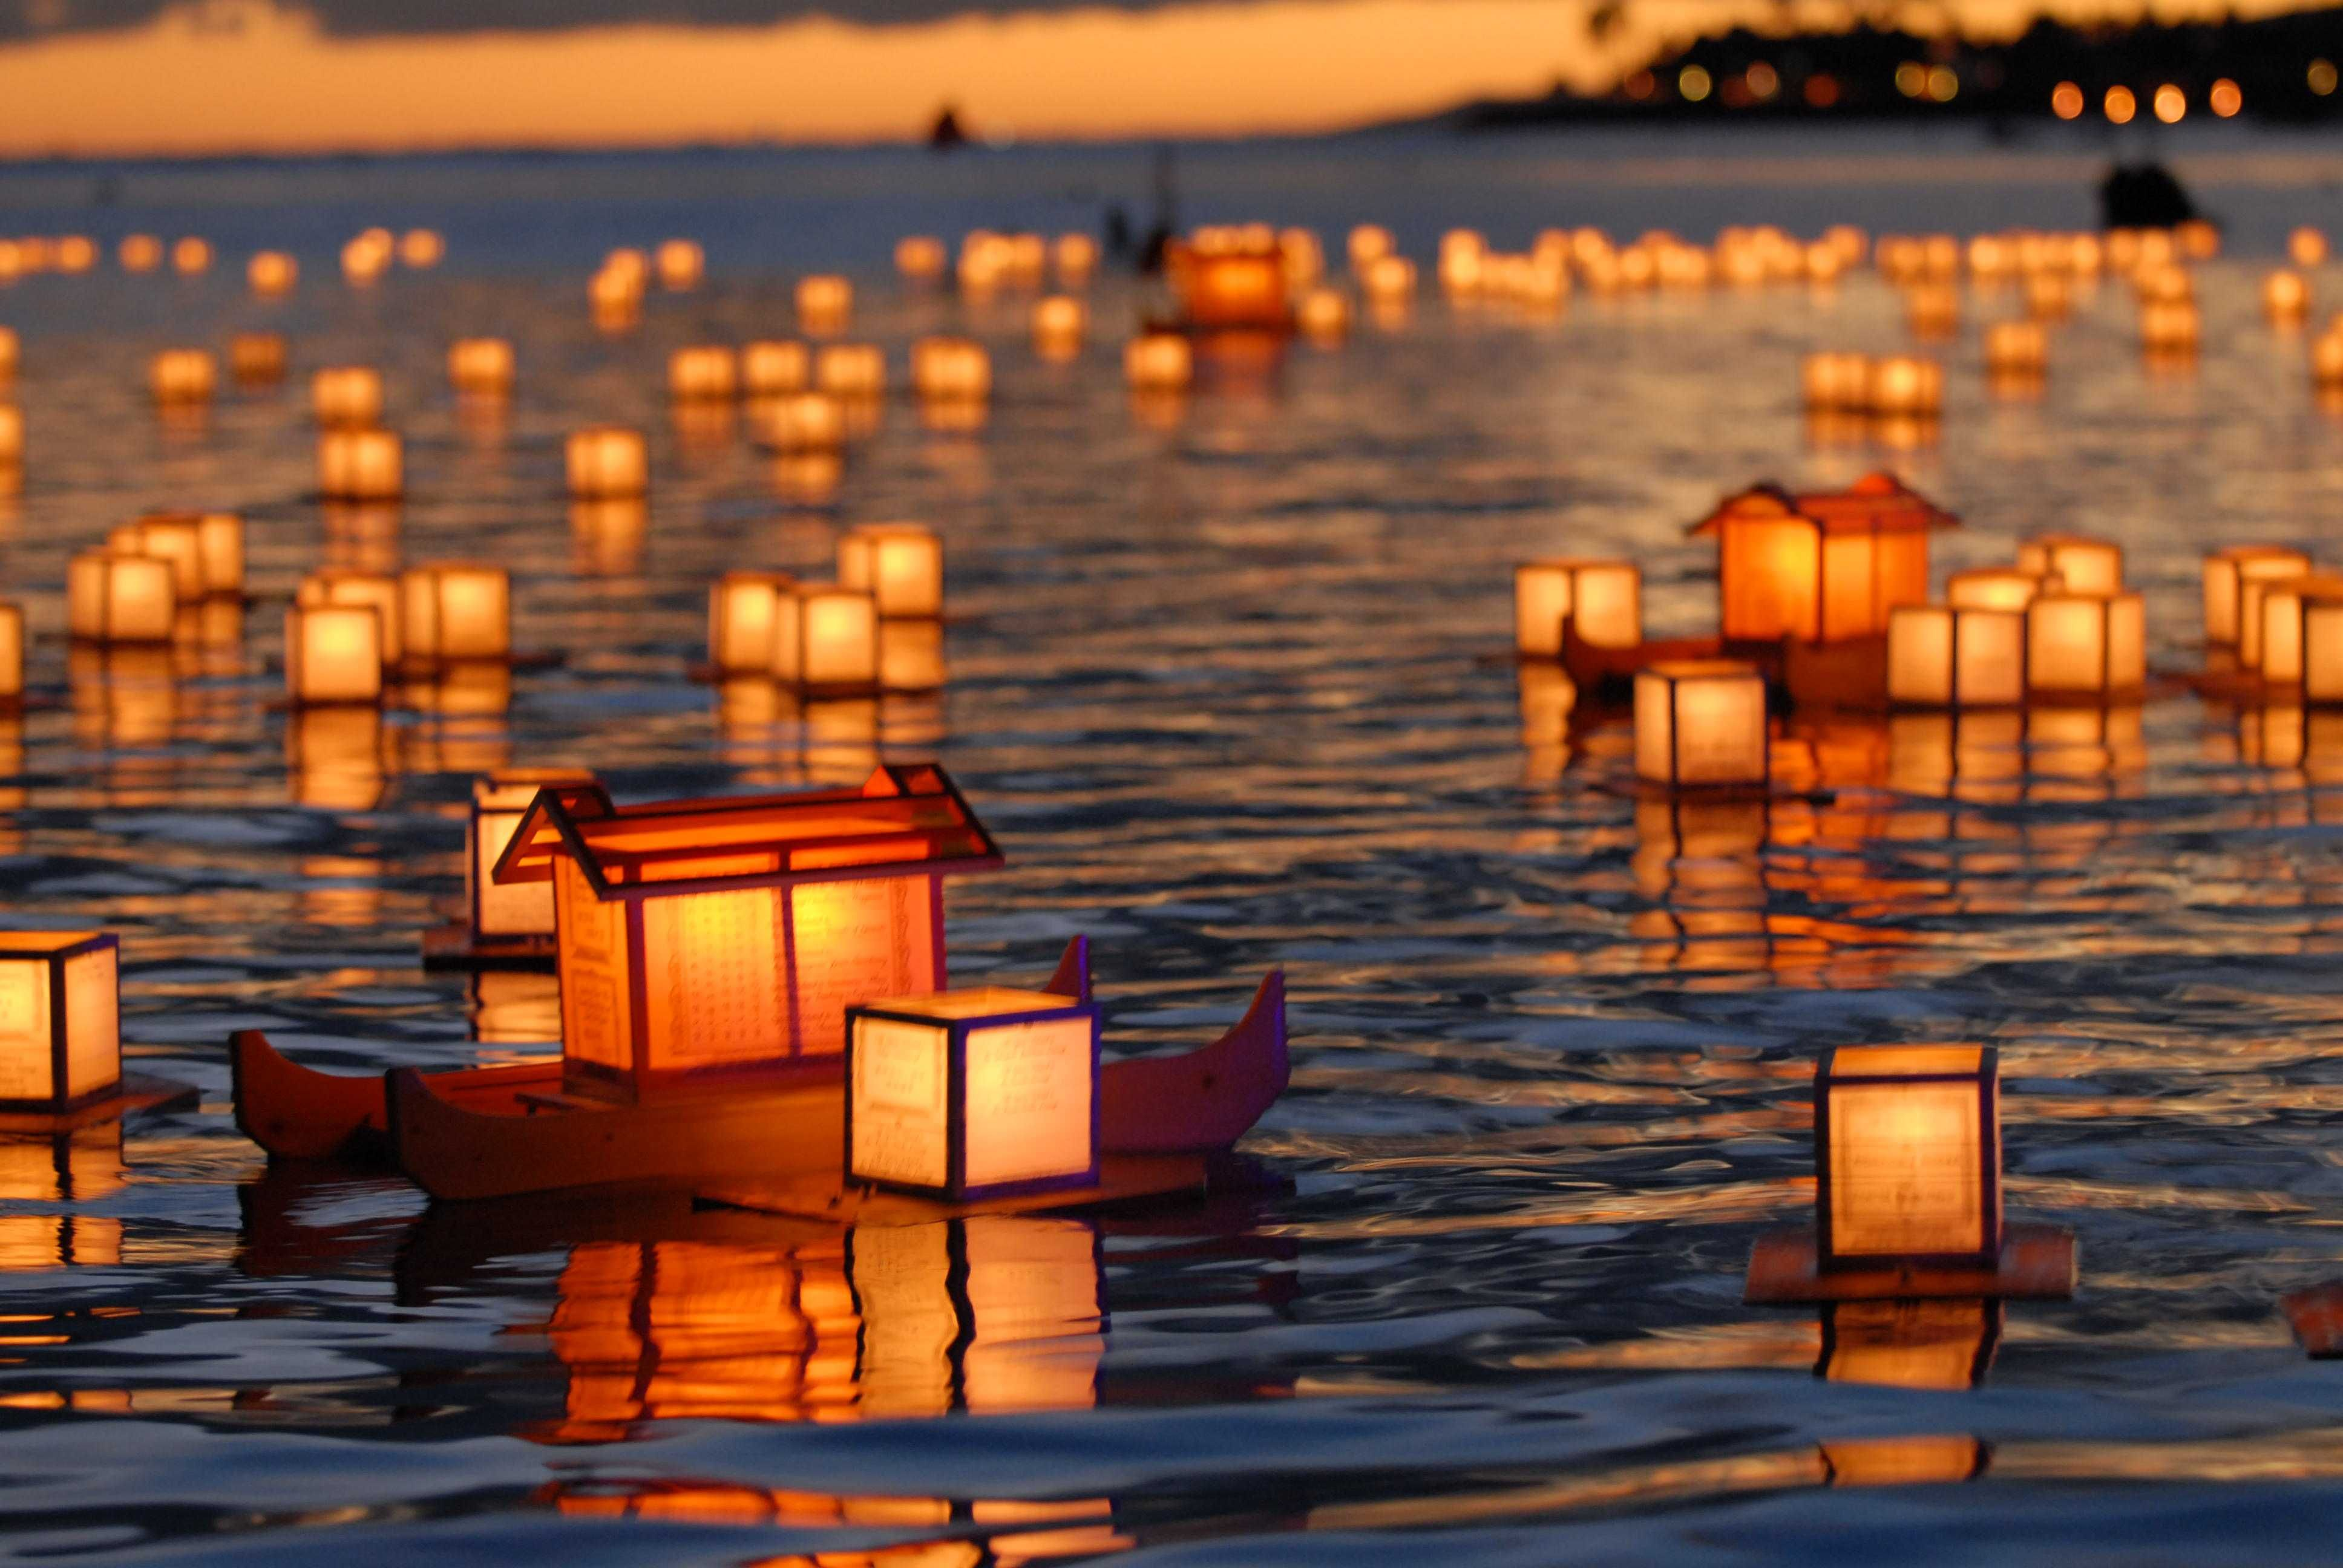 Lanterns-on-the-ocean.jpeg 3,872×2,592 pixels | CANDLE MAGIC..let ... for Sky Lanterns Over Water  104xkb